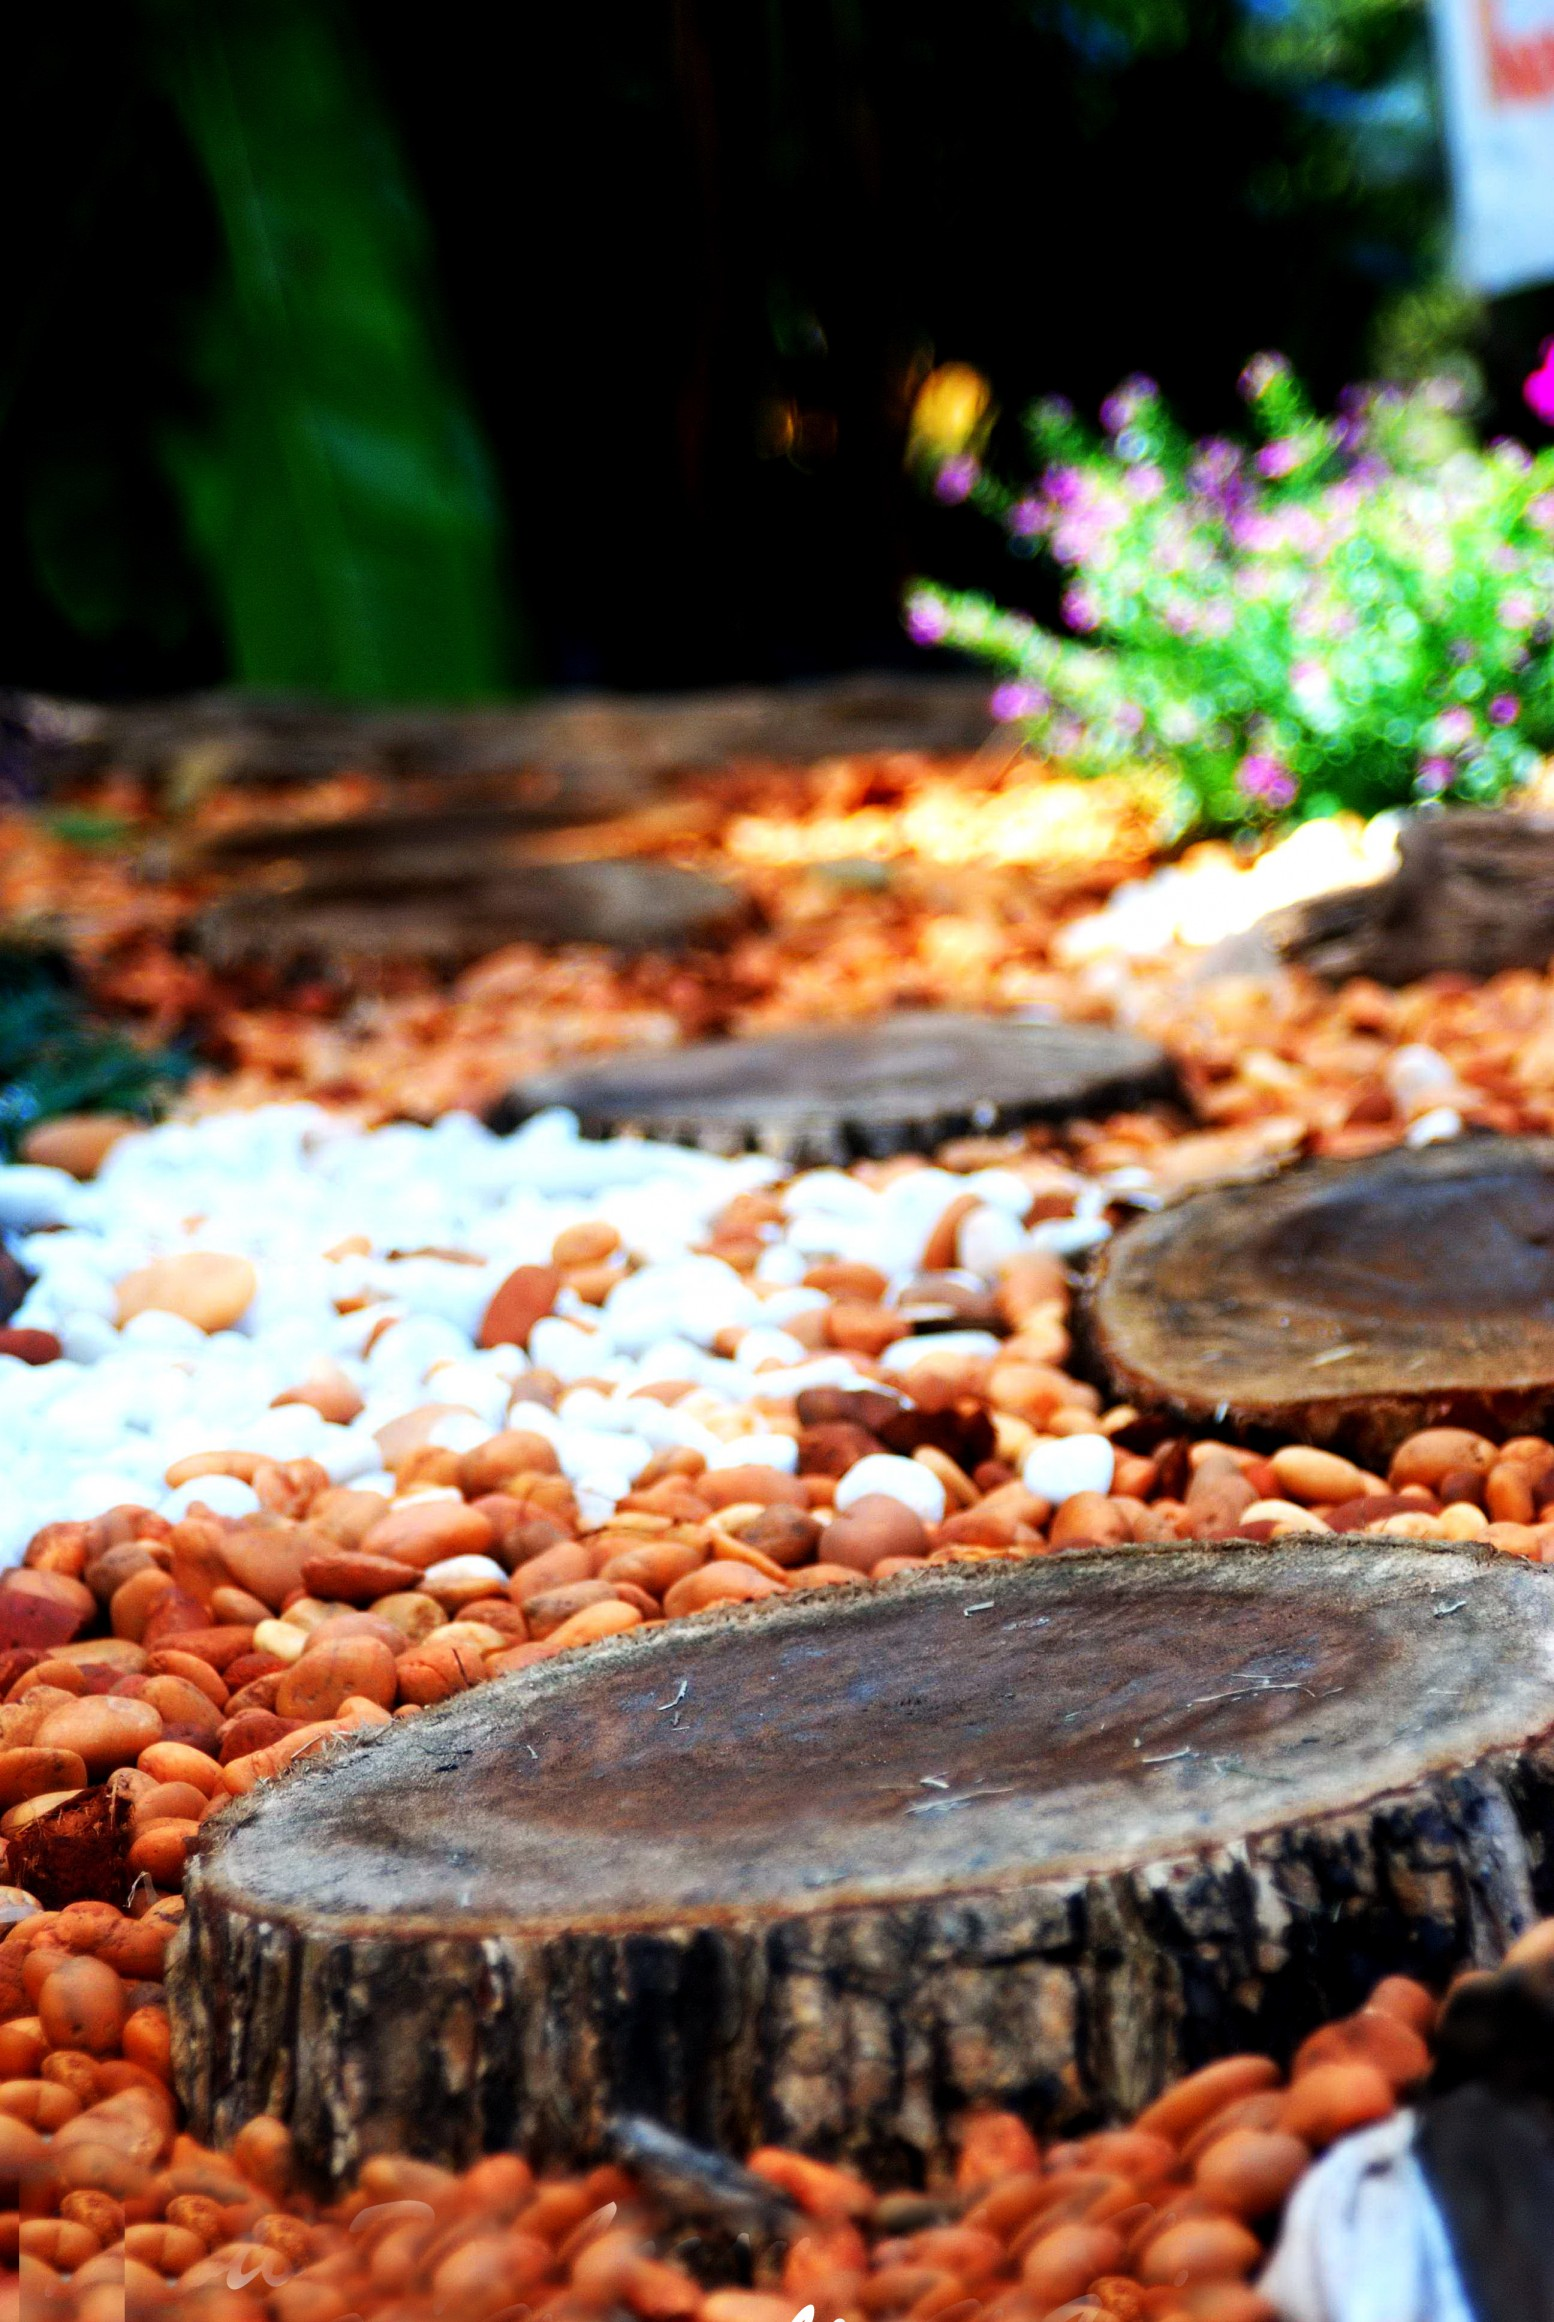 The wooden stumps on pebbles